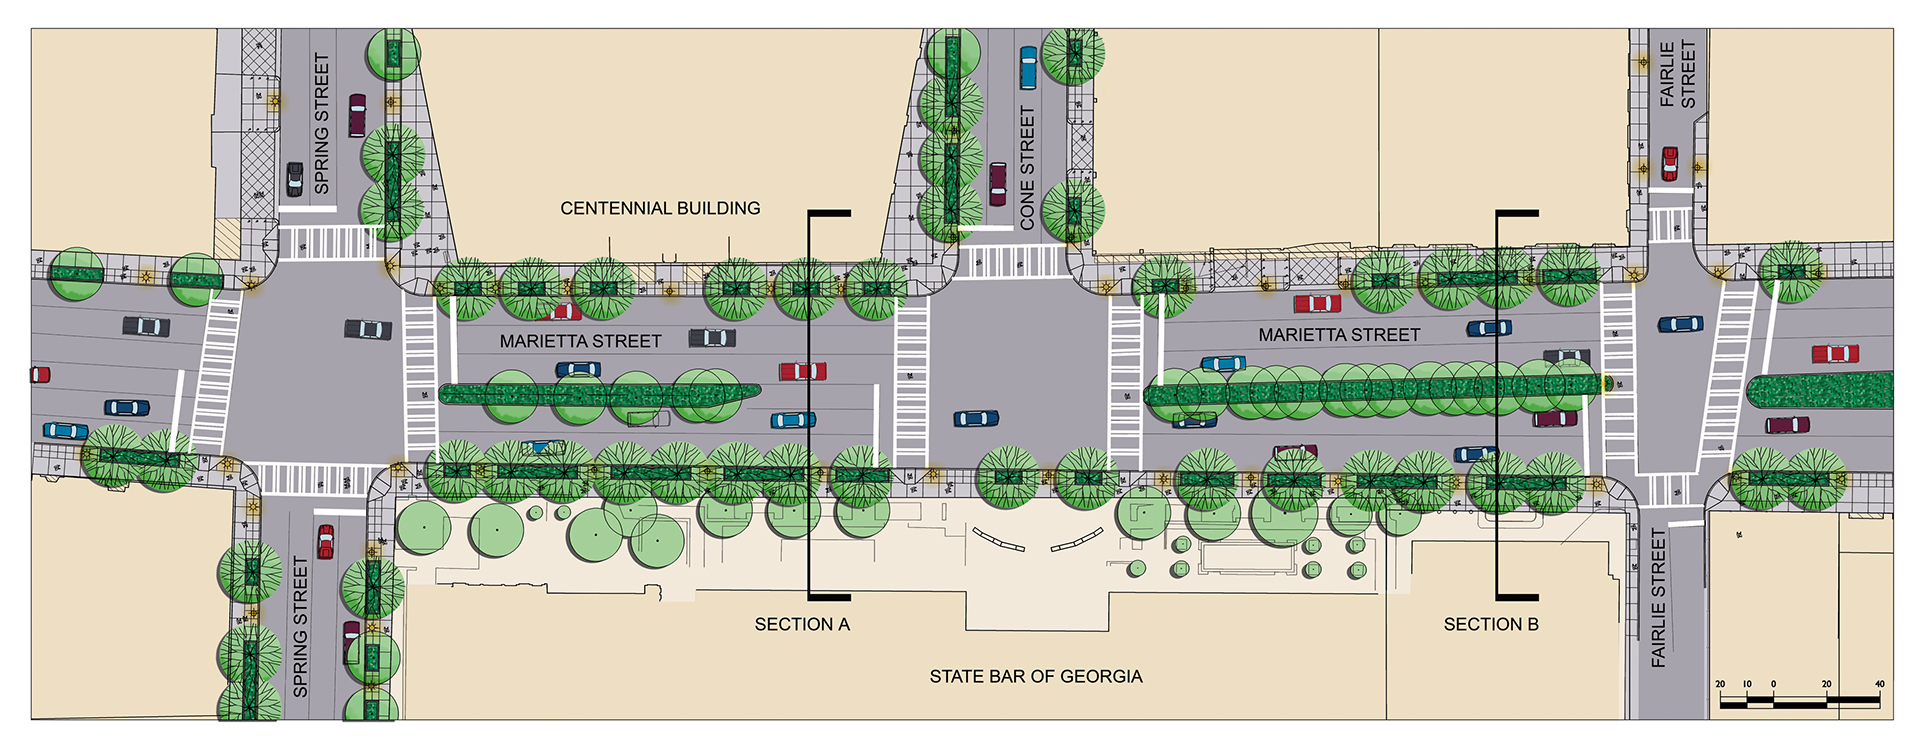 atlanta streetscapes enlargement plan